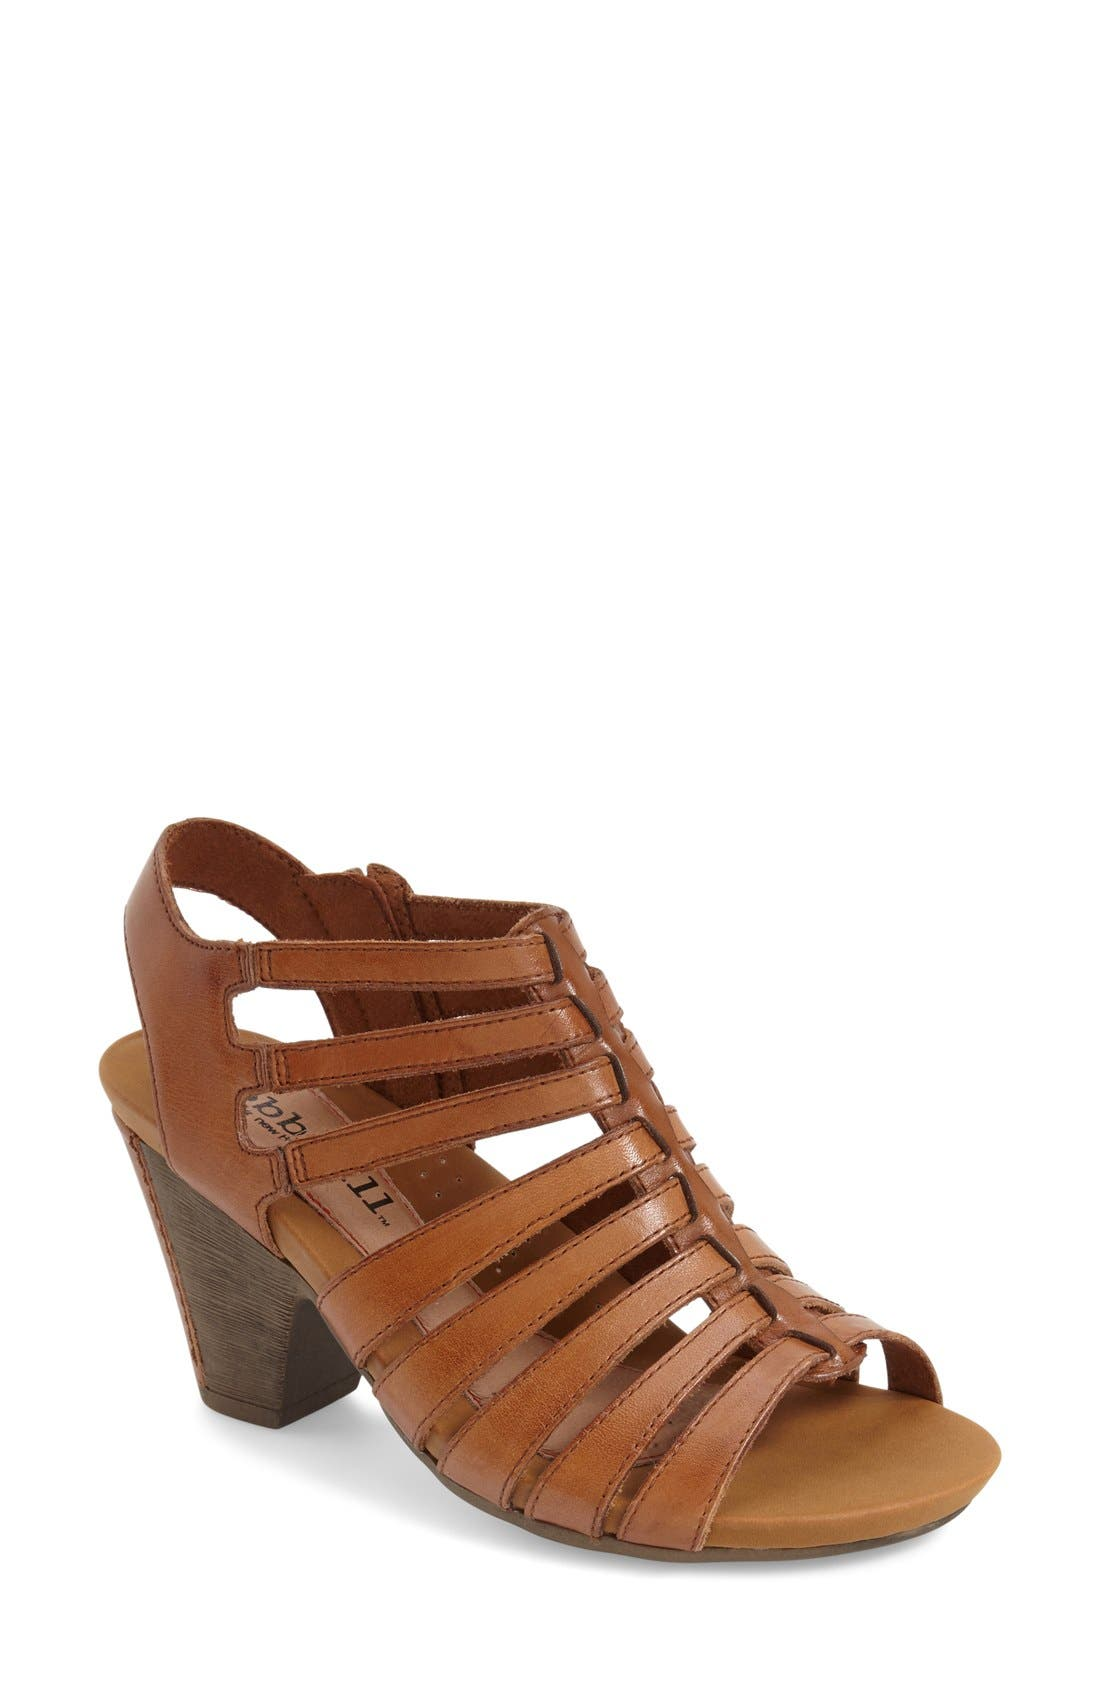 'Taylor' Caged Sandal,                             Main thumbnail 1, color,                             TAN LEATHER